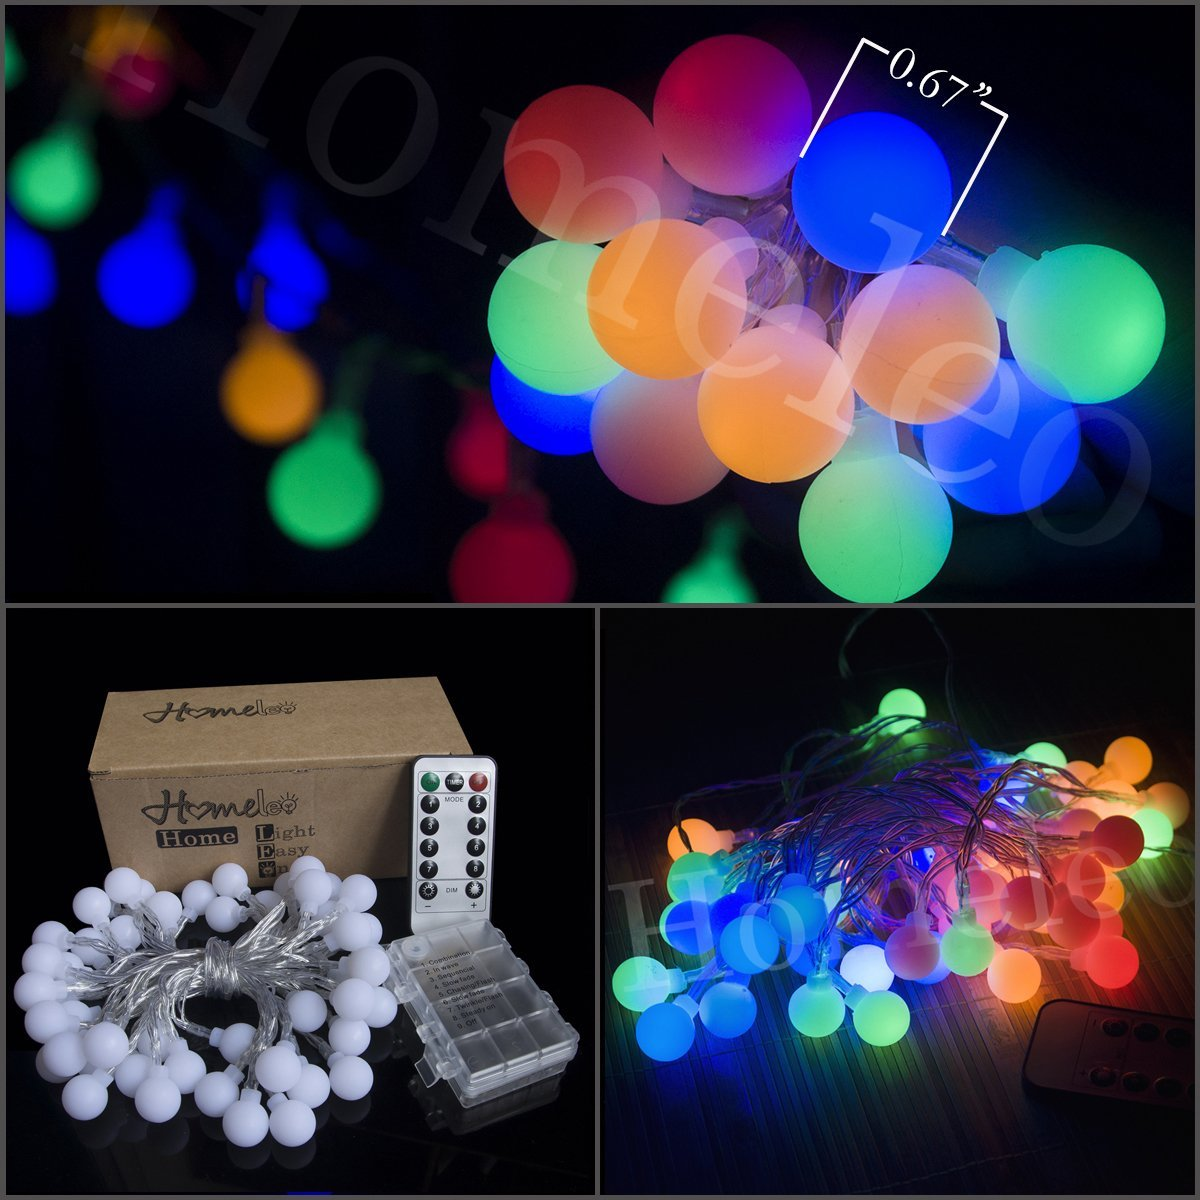 Homeleo 16.4ft 50led Remote Dimmable Globe String Lights, Battery Powered Multi-color Colorful Ball Starry Blinking Twinkle Flashing Fairy Starry Light String